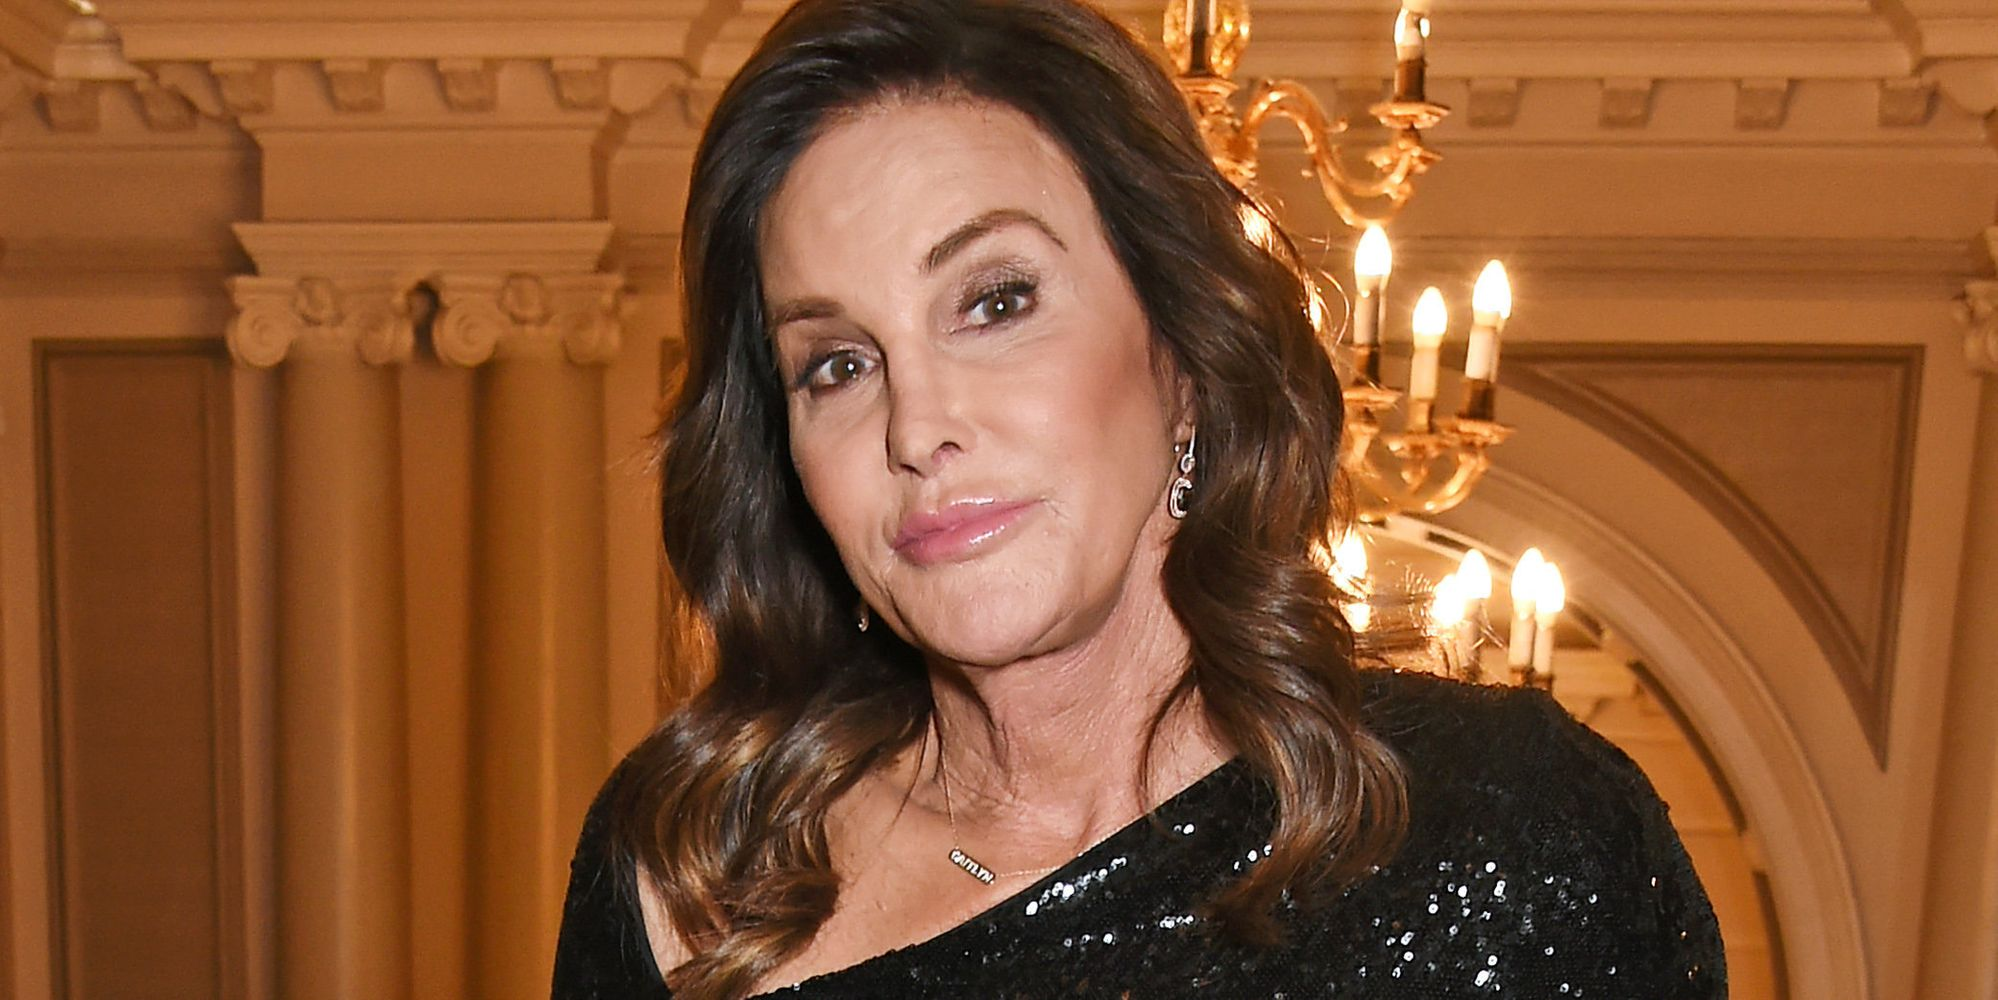 Is Caitlyn Jenner About To Become One Of The Highest Paid 'Celebrity Big Brother' Stars Ever?